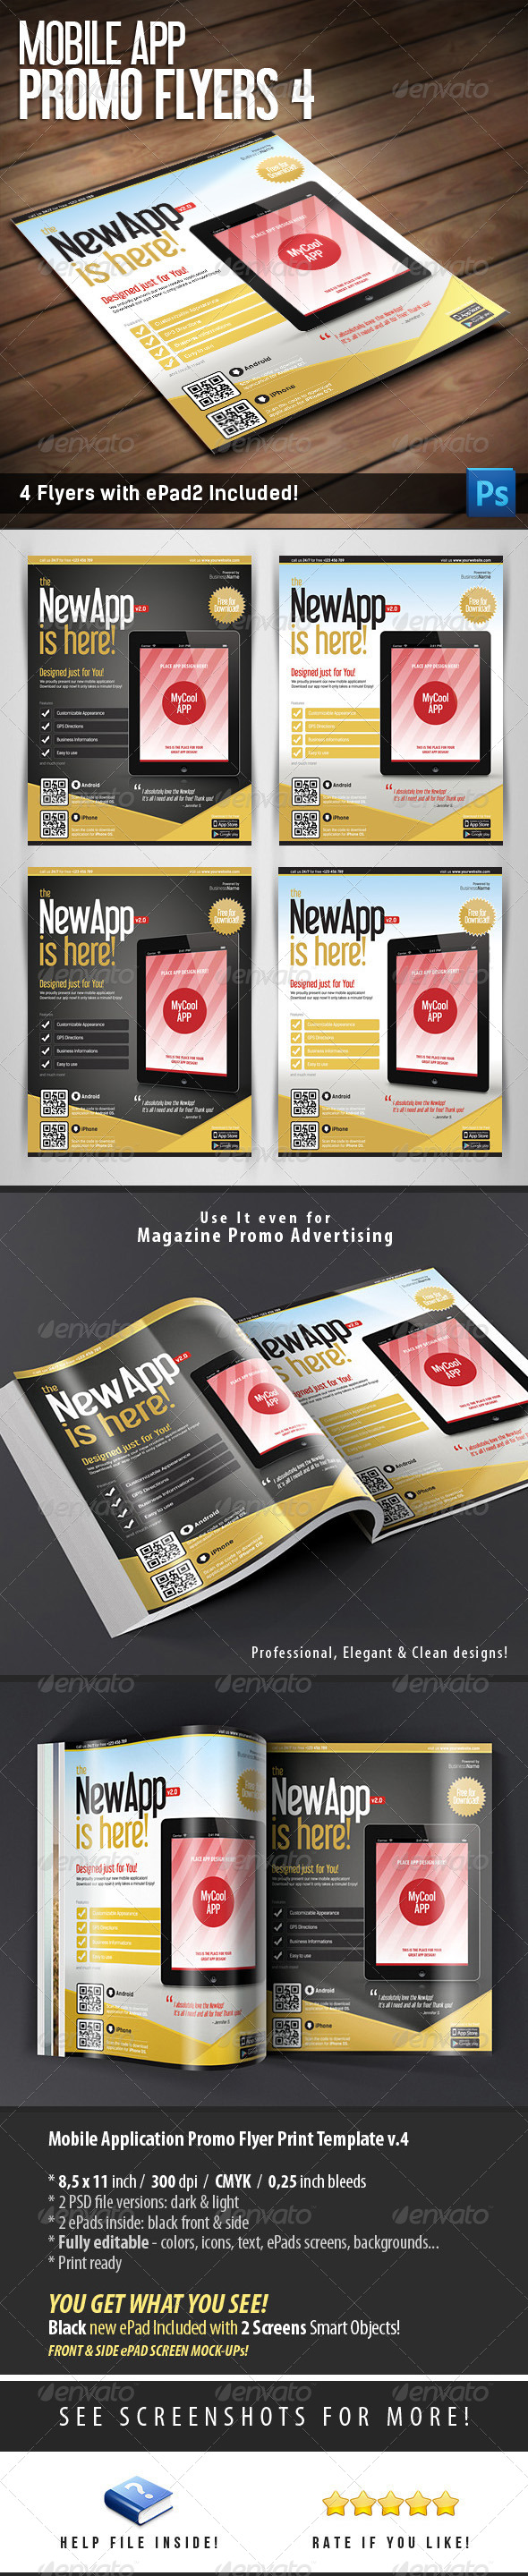 Mobile App Flyers Template v.4 - Commerce Flyers